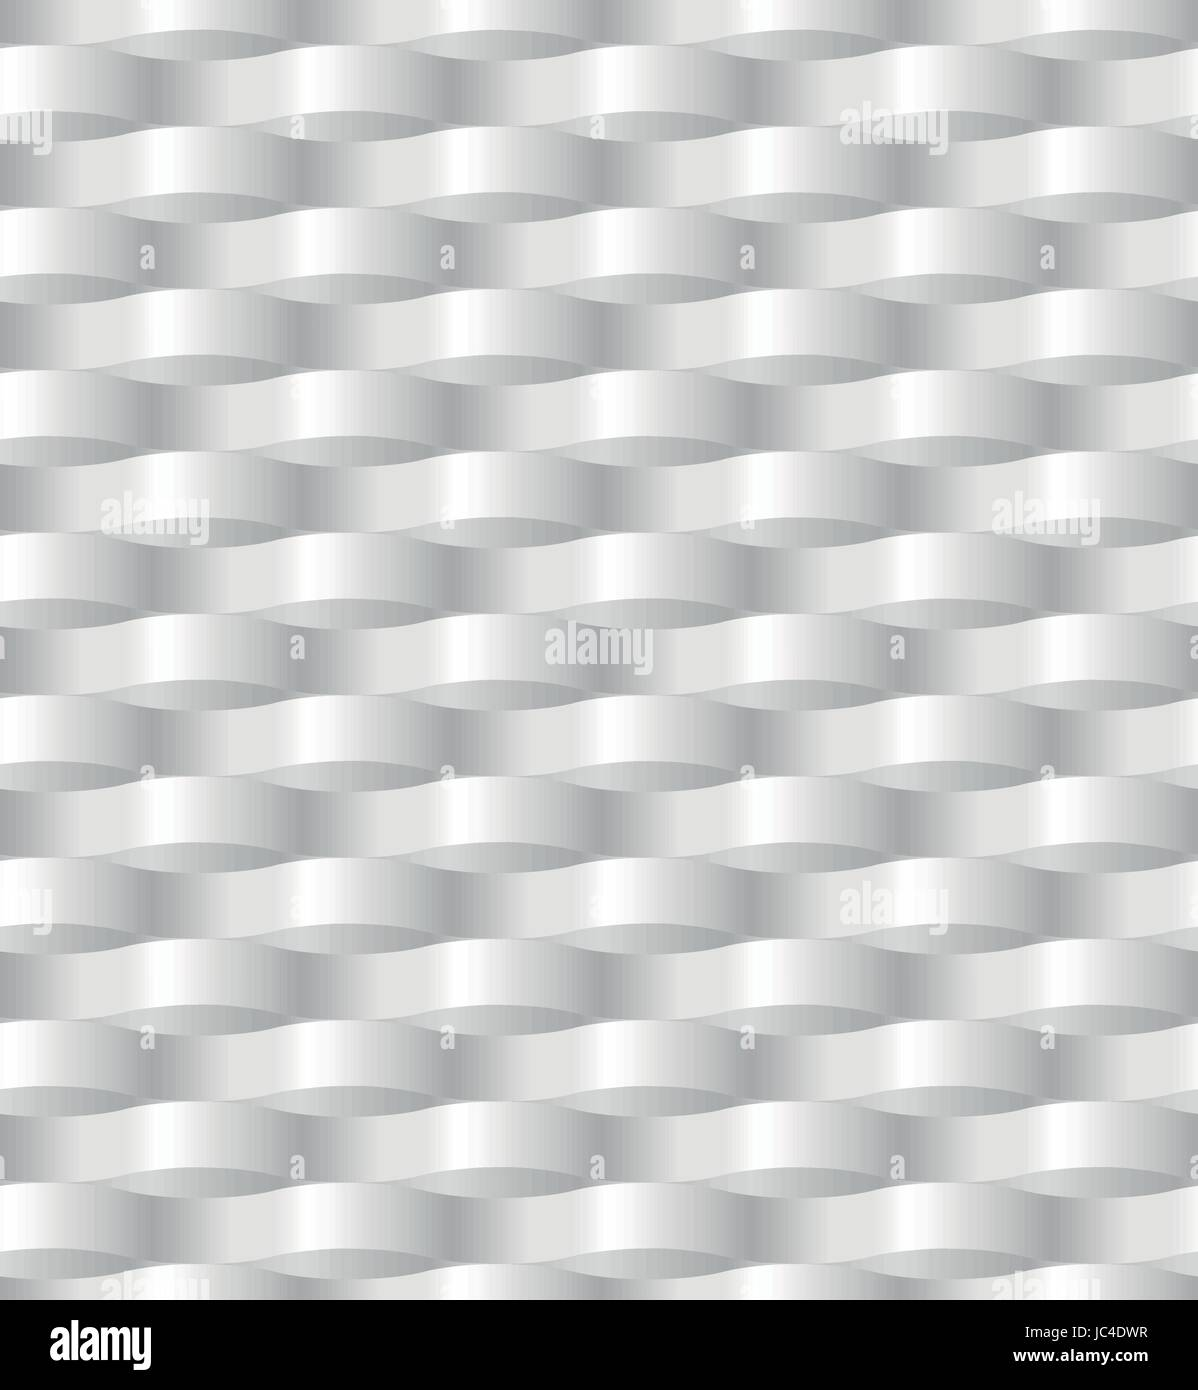 Paper waving wickerwork network abstract three dimensional pattern seamless in gray - white color. Vector illustration - Stock Vector